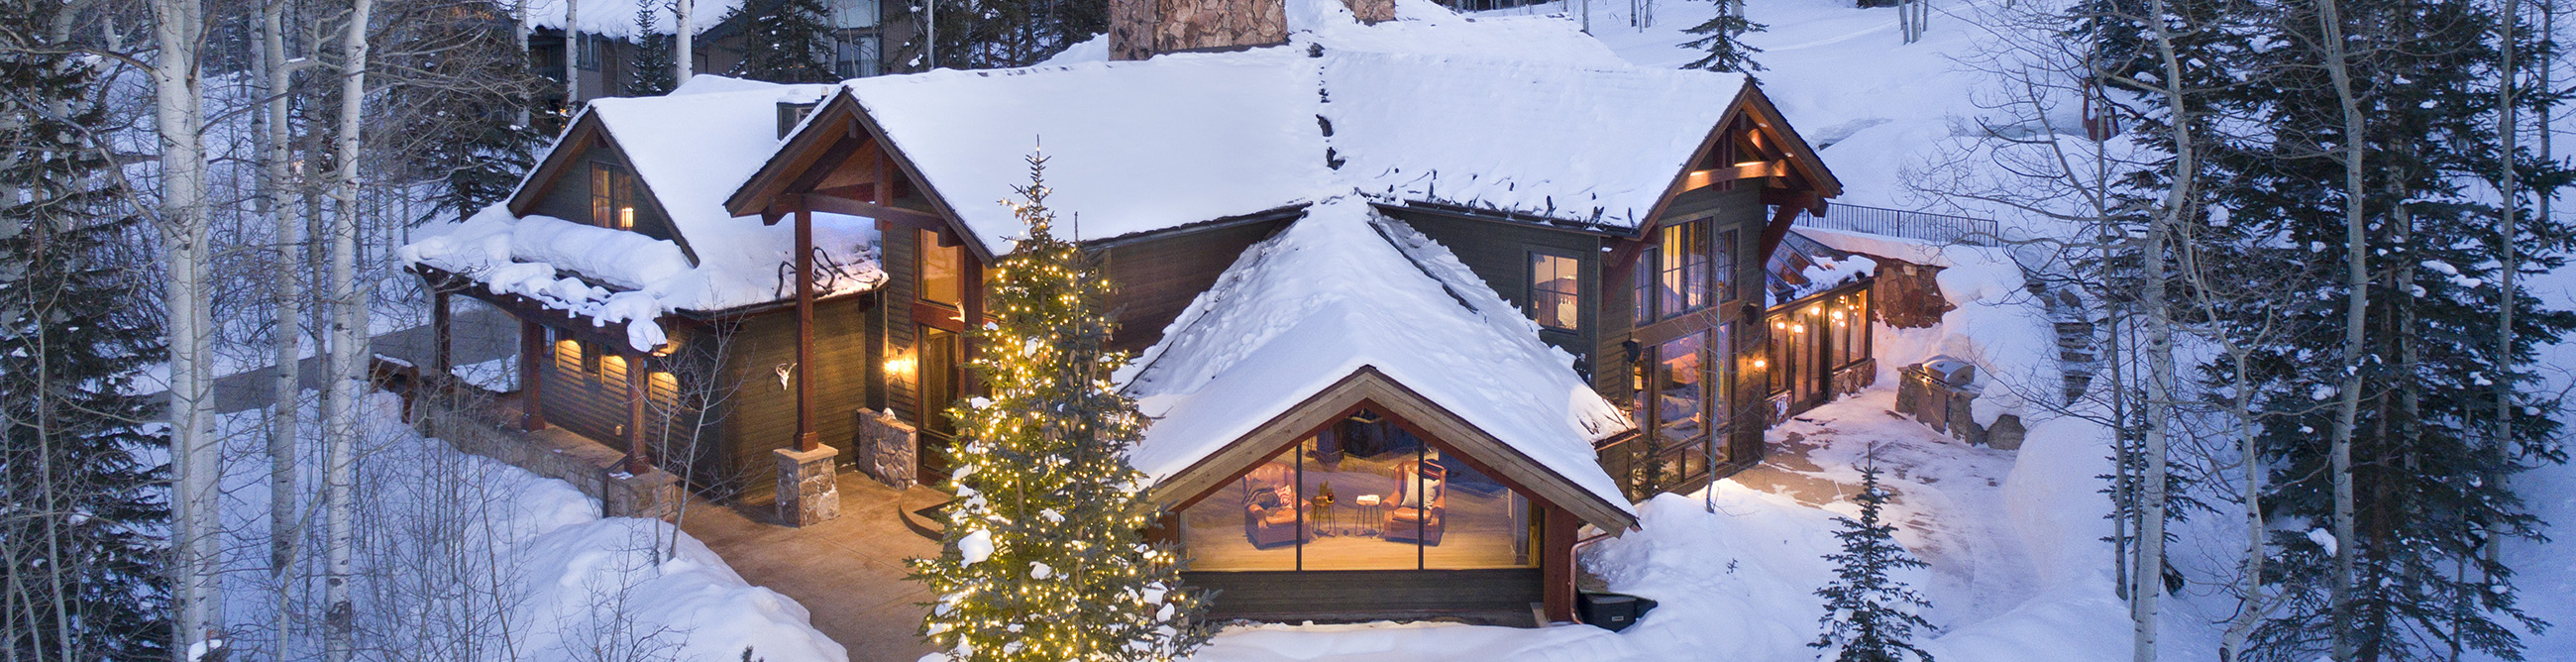 1400 Wood Road in Snowmass Village is on sale for $6.95 million.